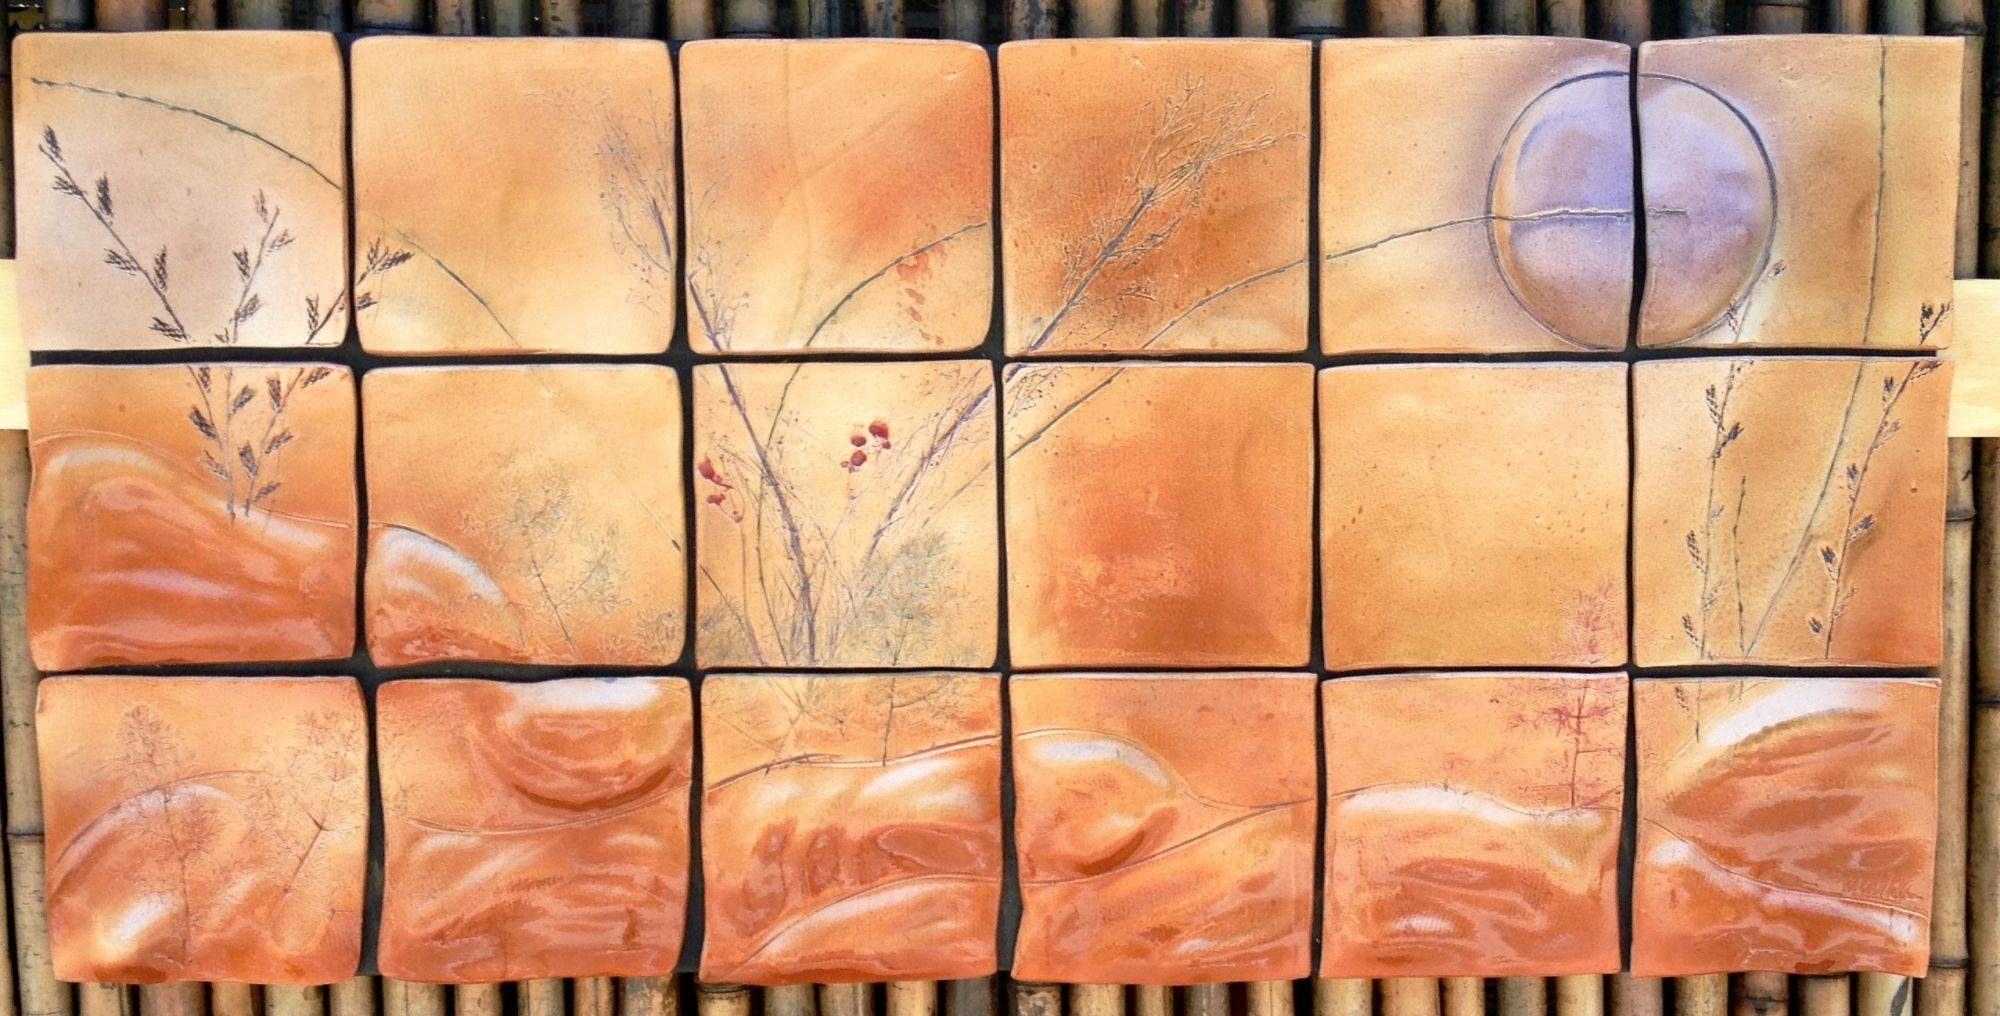 Amethyst Moonrise Ceramic Tile Wall Art, Original Ceramic Art With Regard To Most Recently Released Ceramic Tile Wall Art (View 4 of 20)